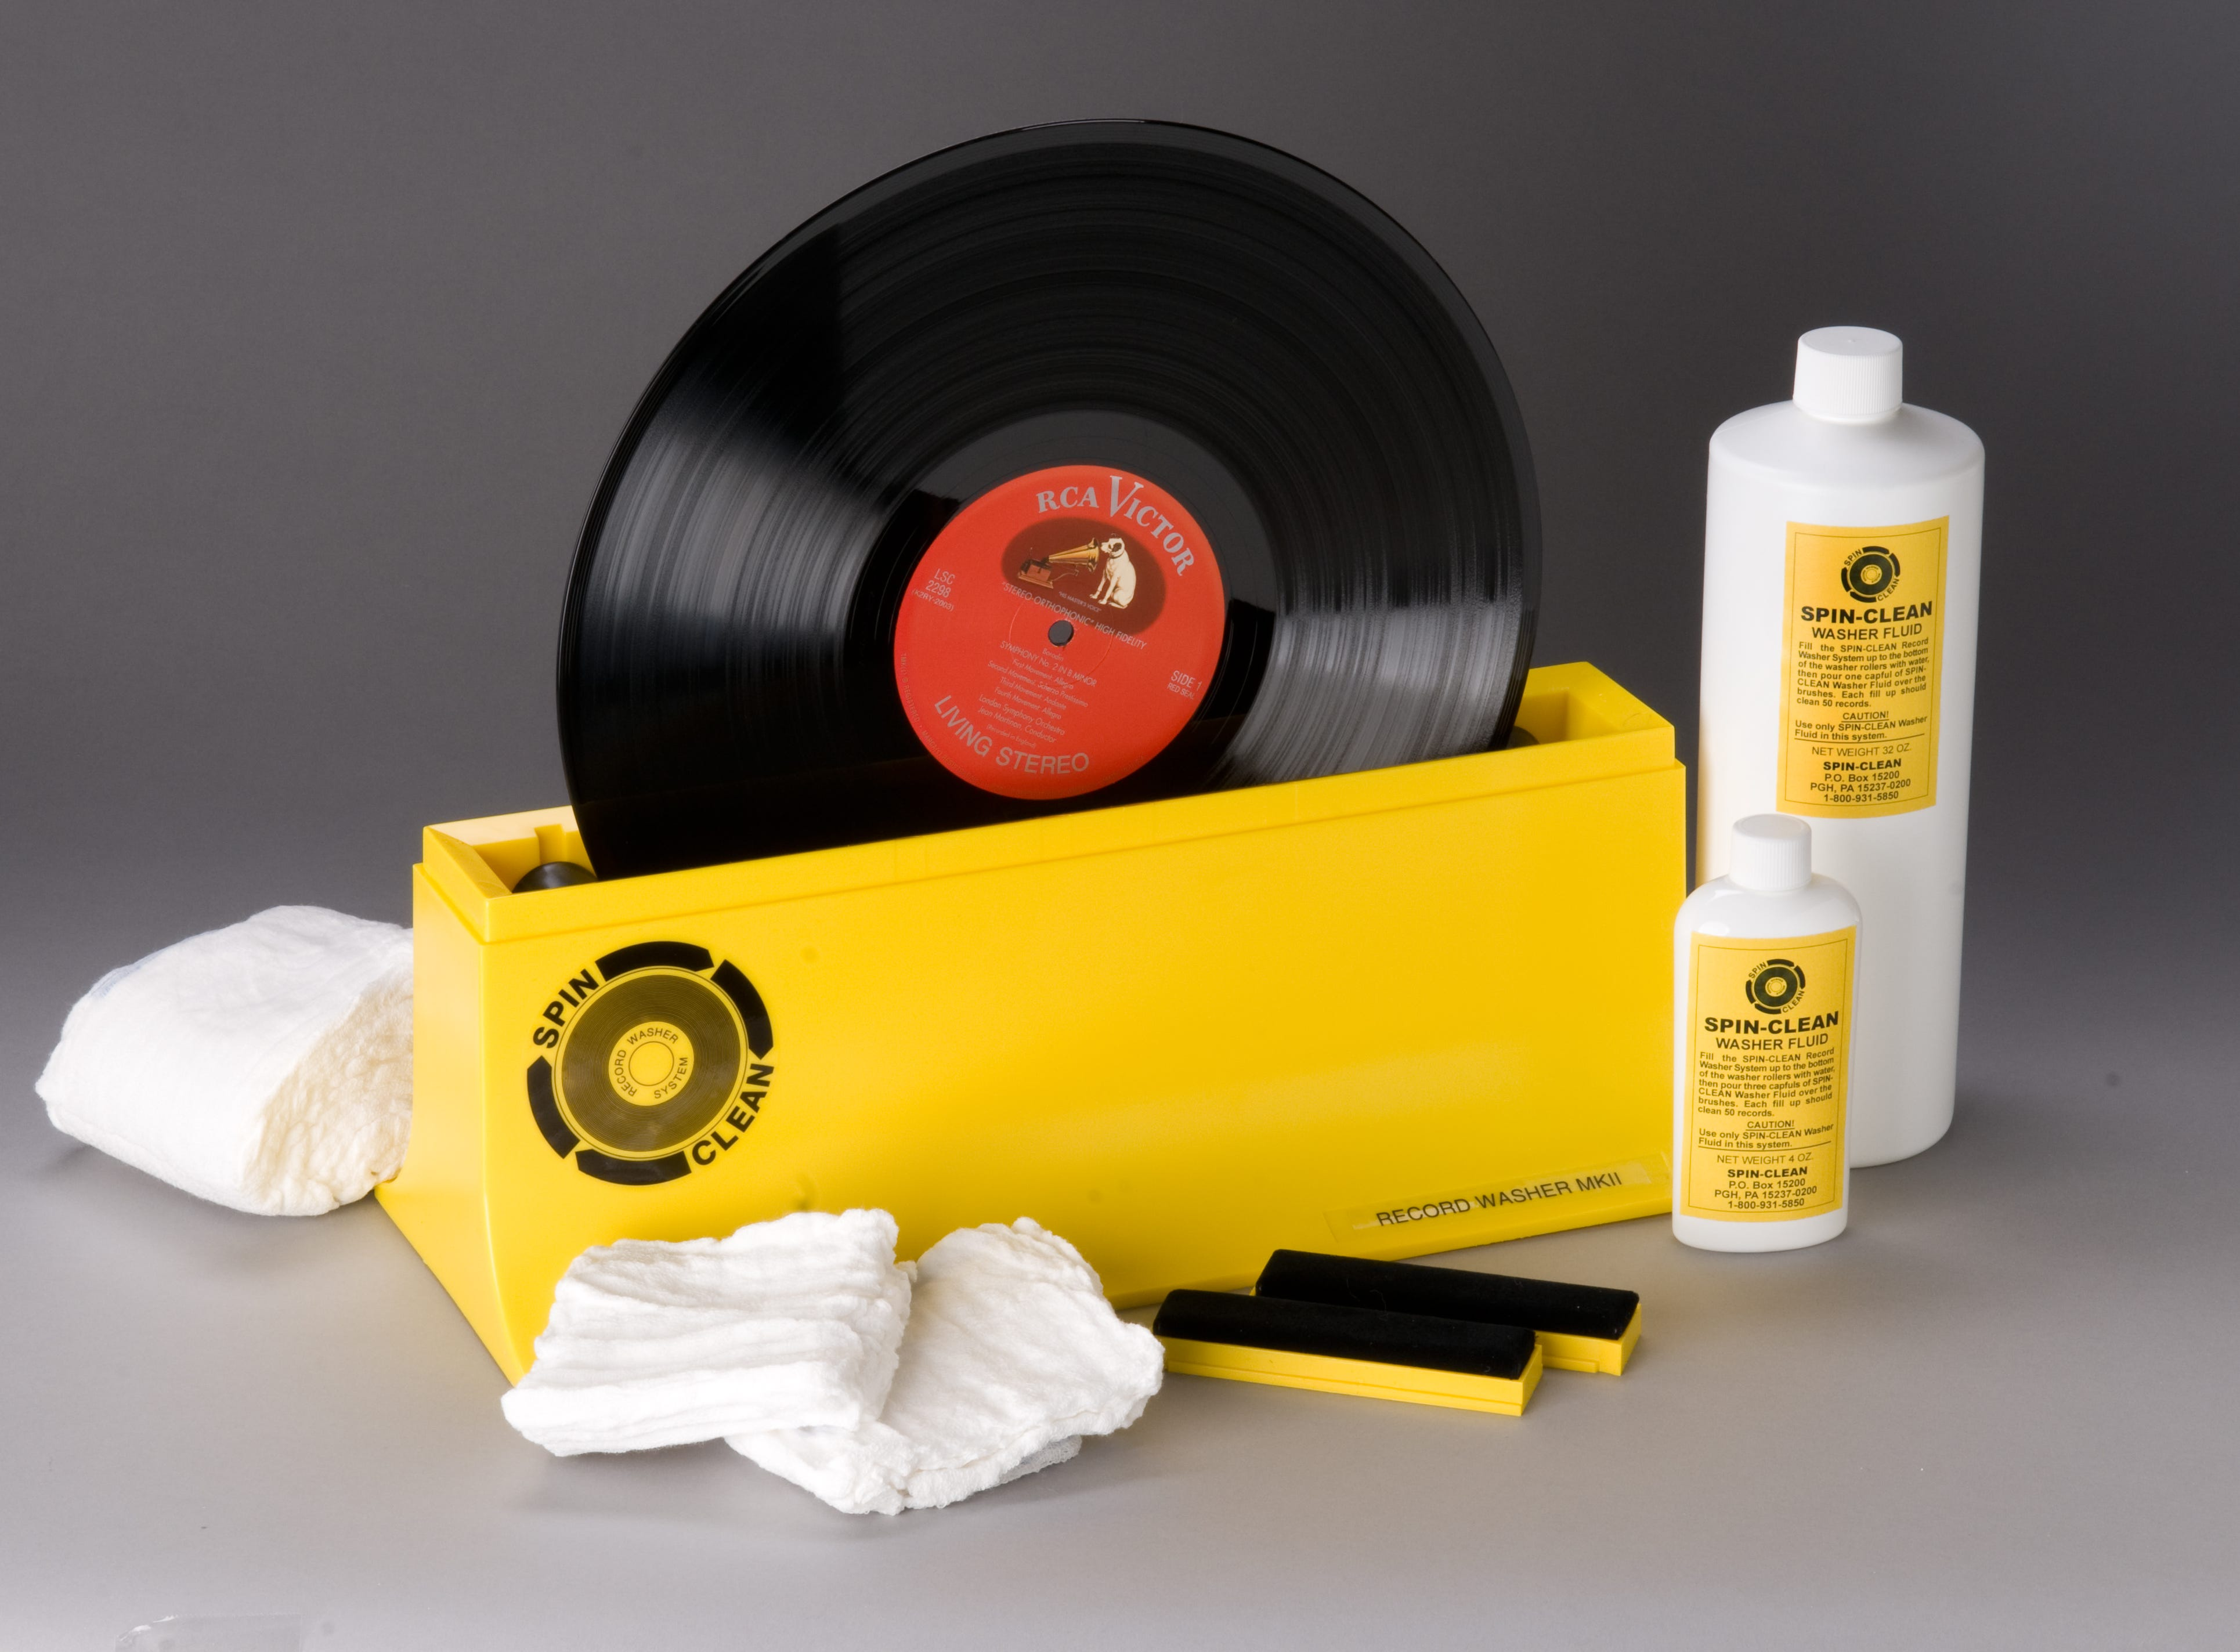 Spin-Clean Record Washer, $79.99. For deep cleaning your LPs.